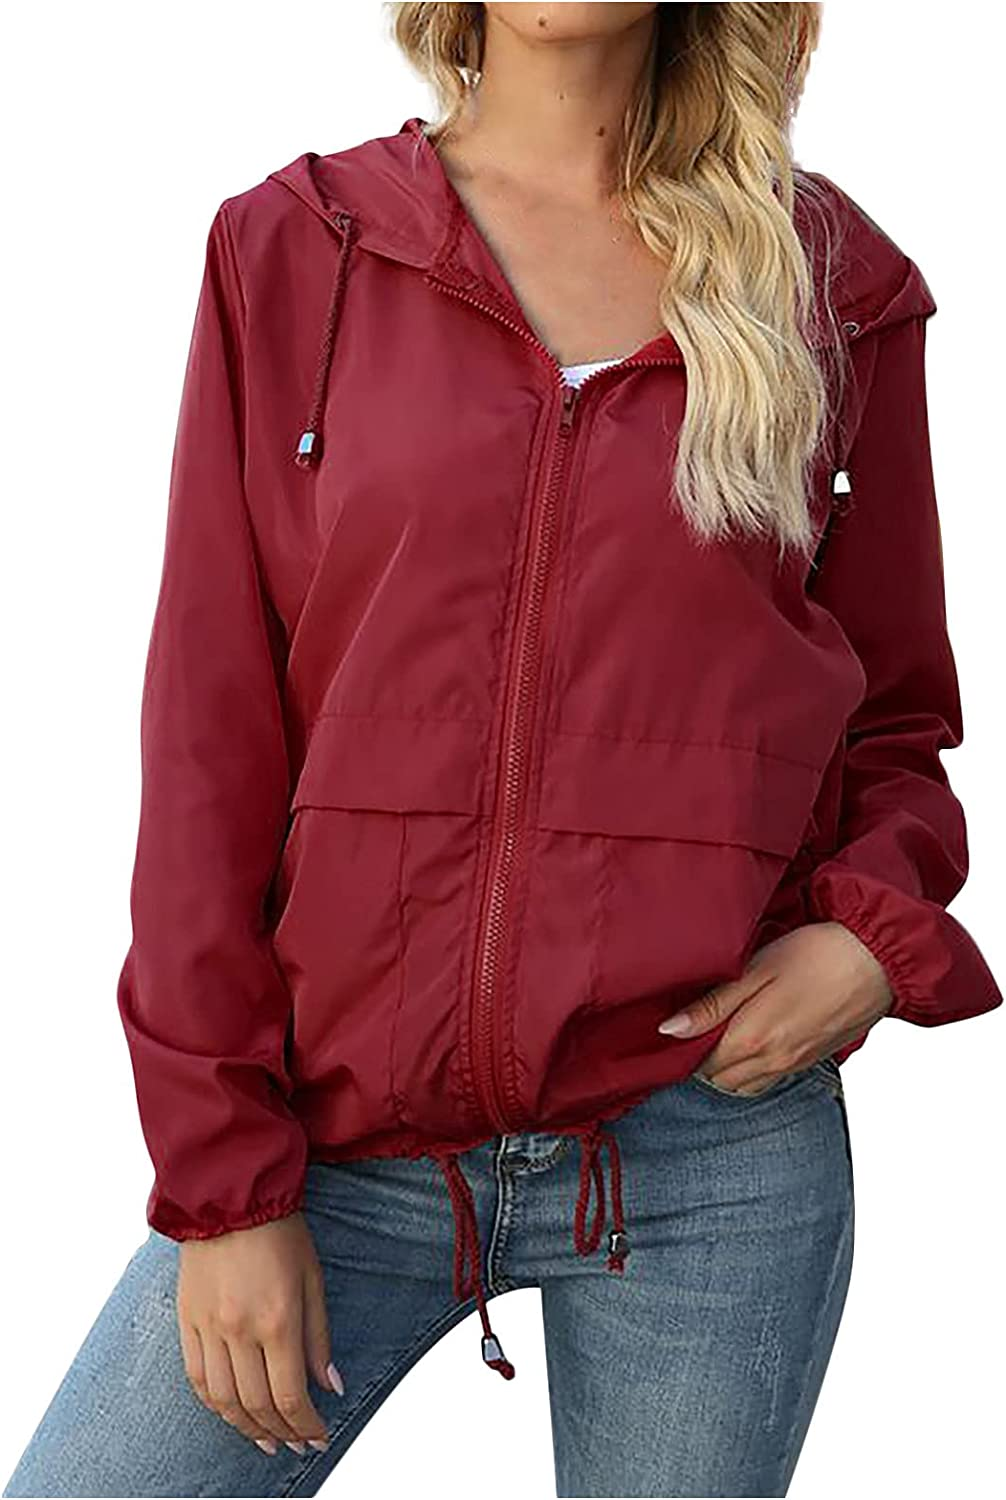 Kanzd Raincoat Max 59% OFF for Women Fashion L Direct store Long Sleeve Hooded Waterproof